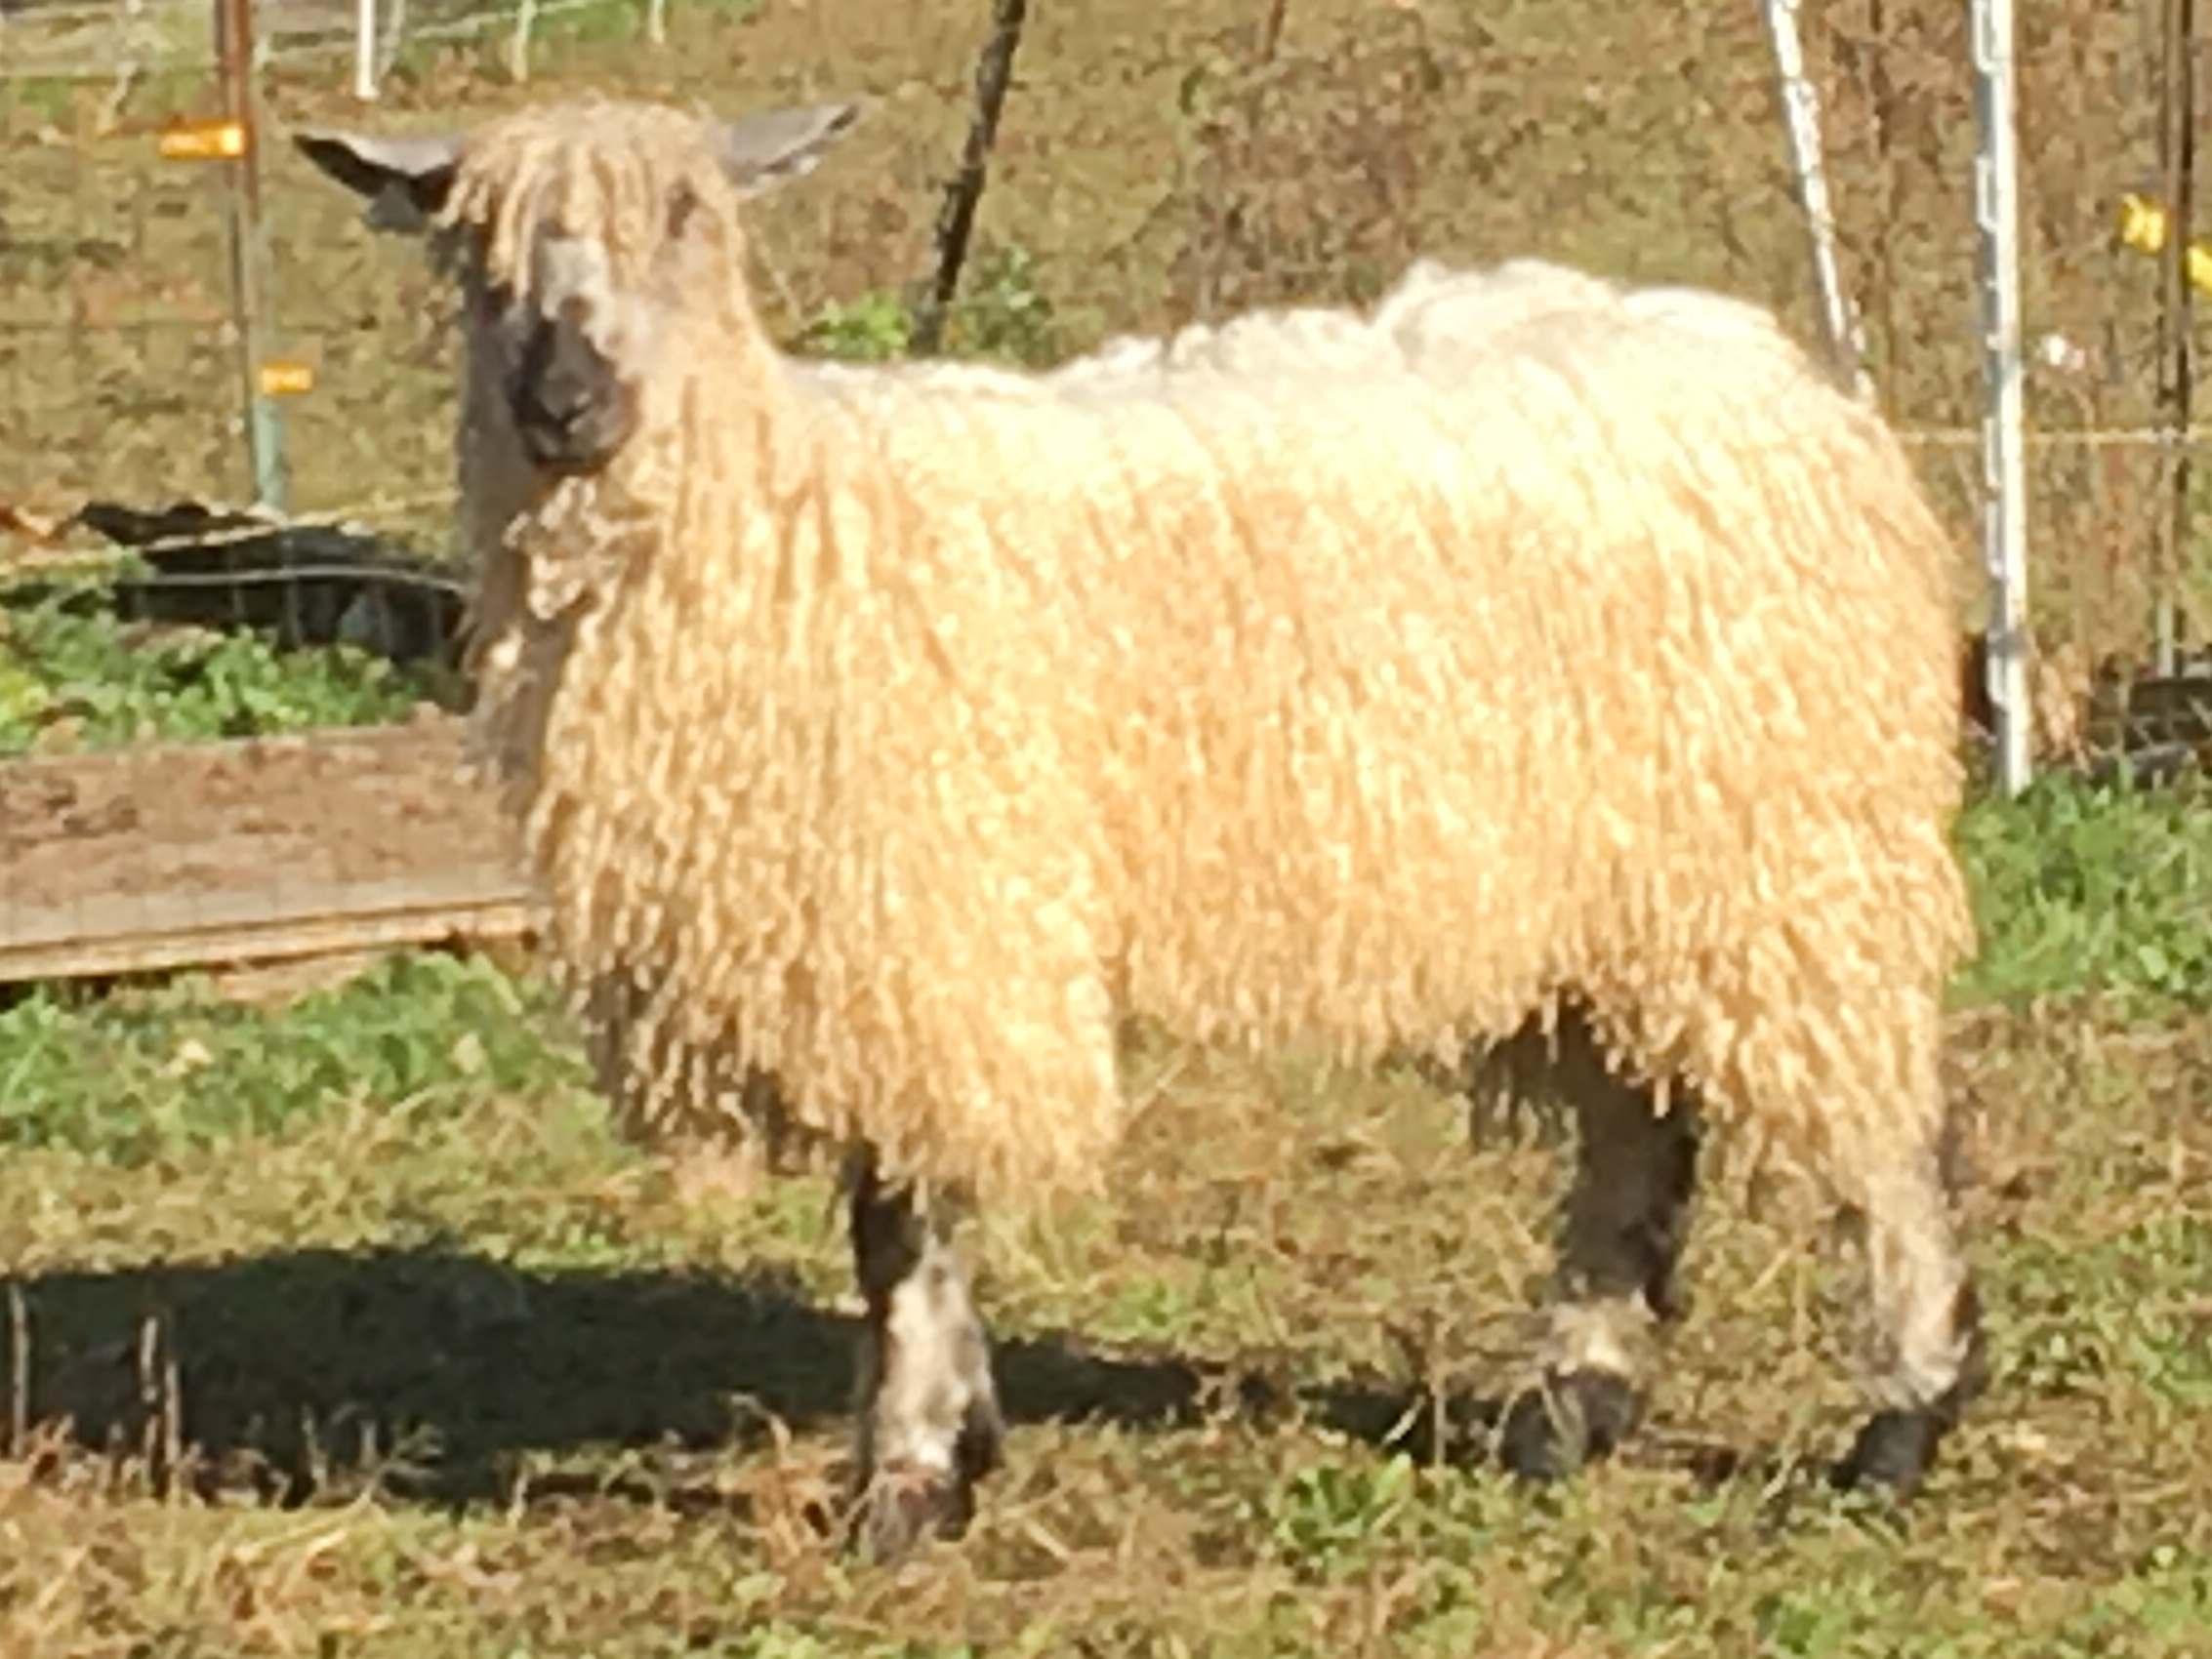 Registered Teeswater Ram